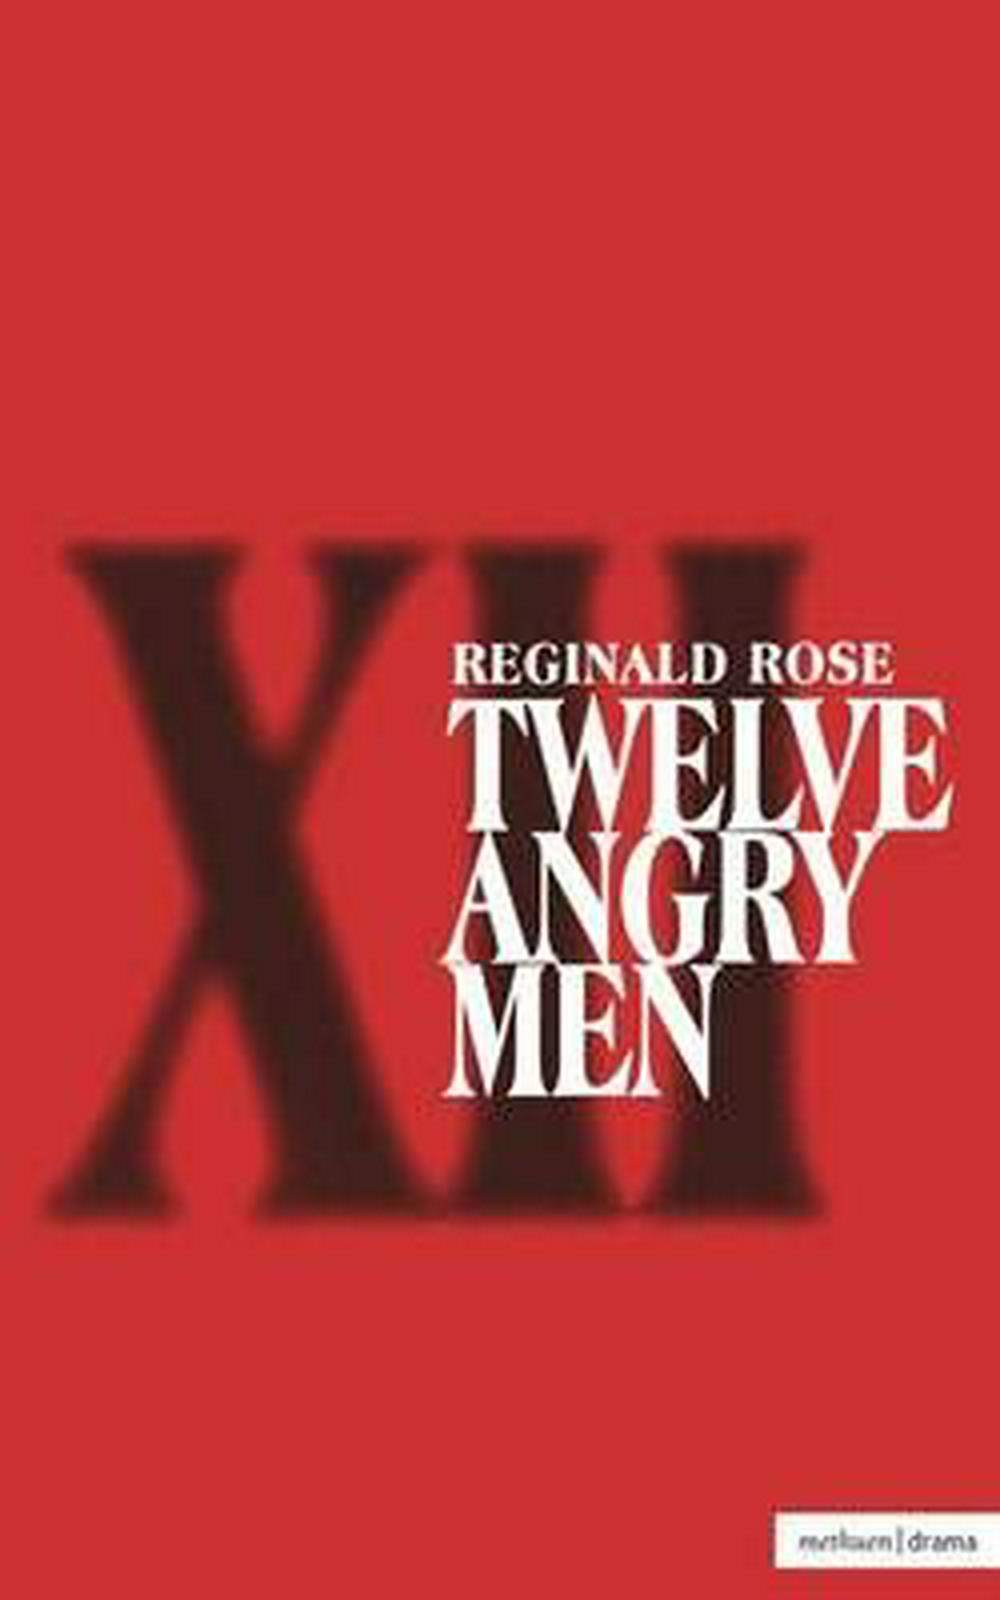 a review of twelve angry men by reginald rose Written by reginald rose produced twelve angry men was filmed on a small budget that criterion's blu-ray of 12 angry men frames sidney lumet's first.